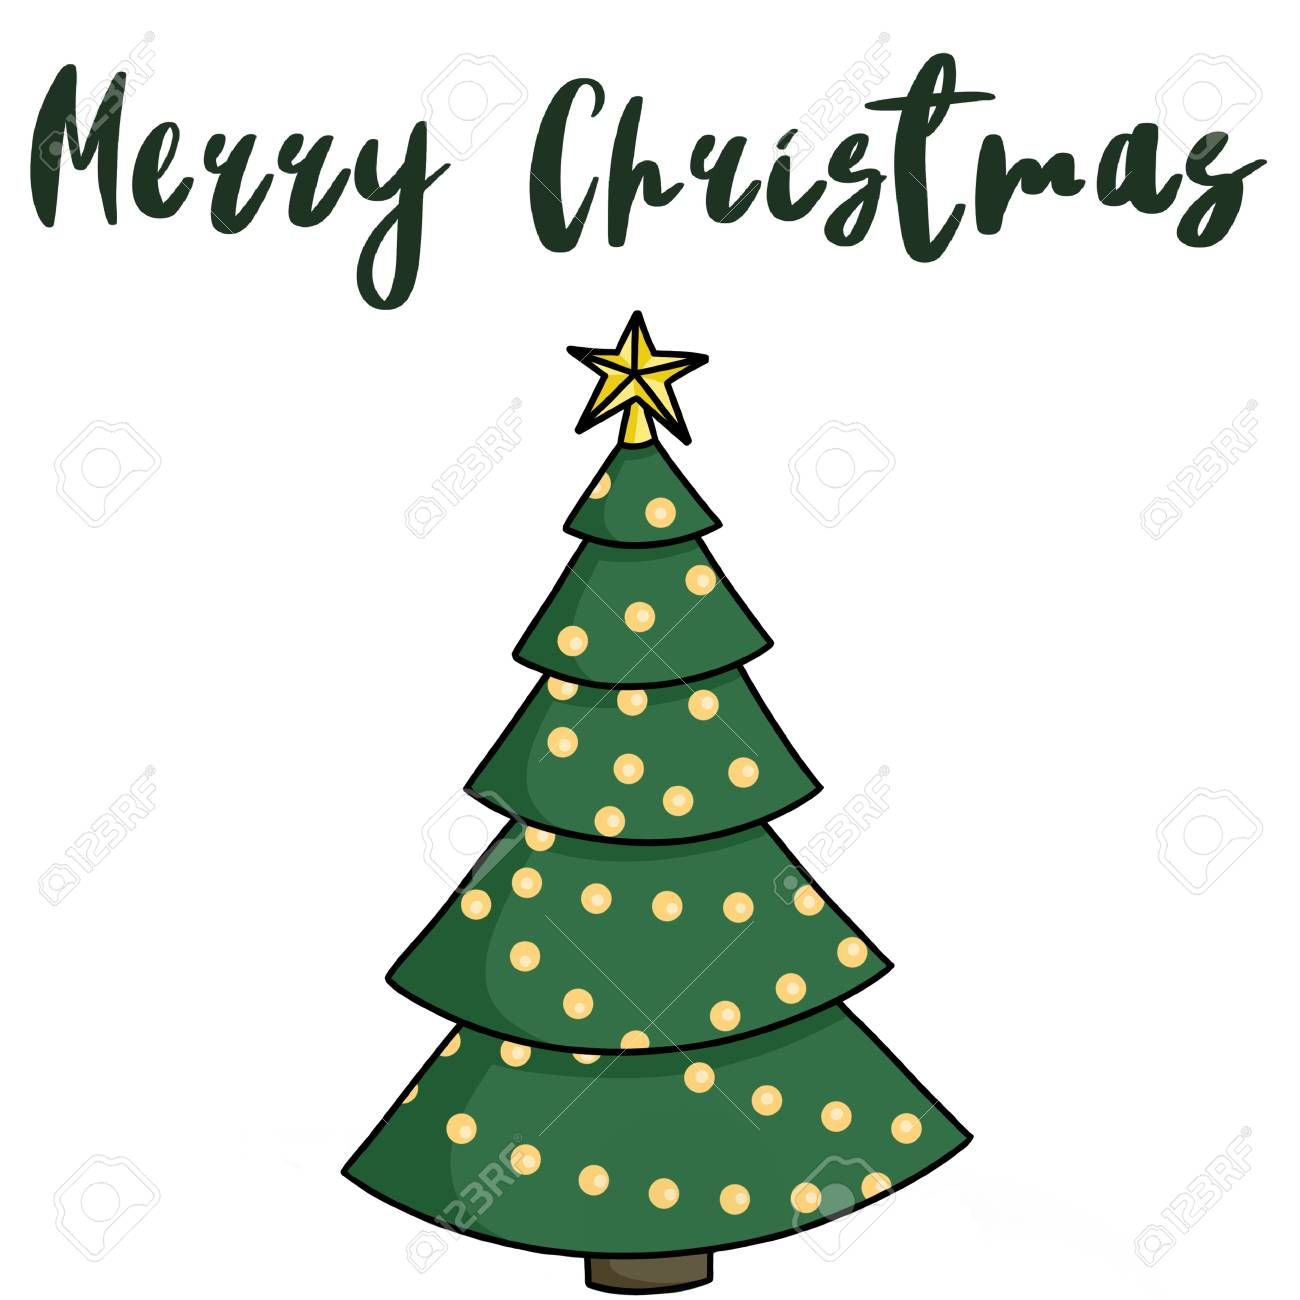 Merry Christmas Text Handwritten Sign On Christmas Tree With Gold Star And Lights Isolated On White Ha In 2020 Merry Christmas Text Cartoon Christmas Tree Christmas